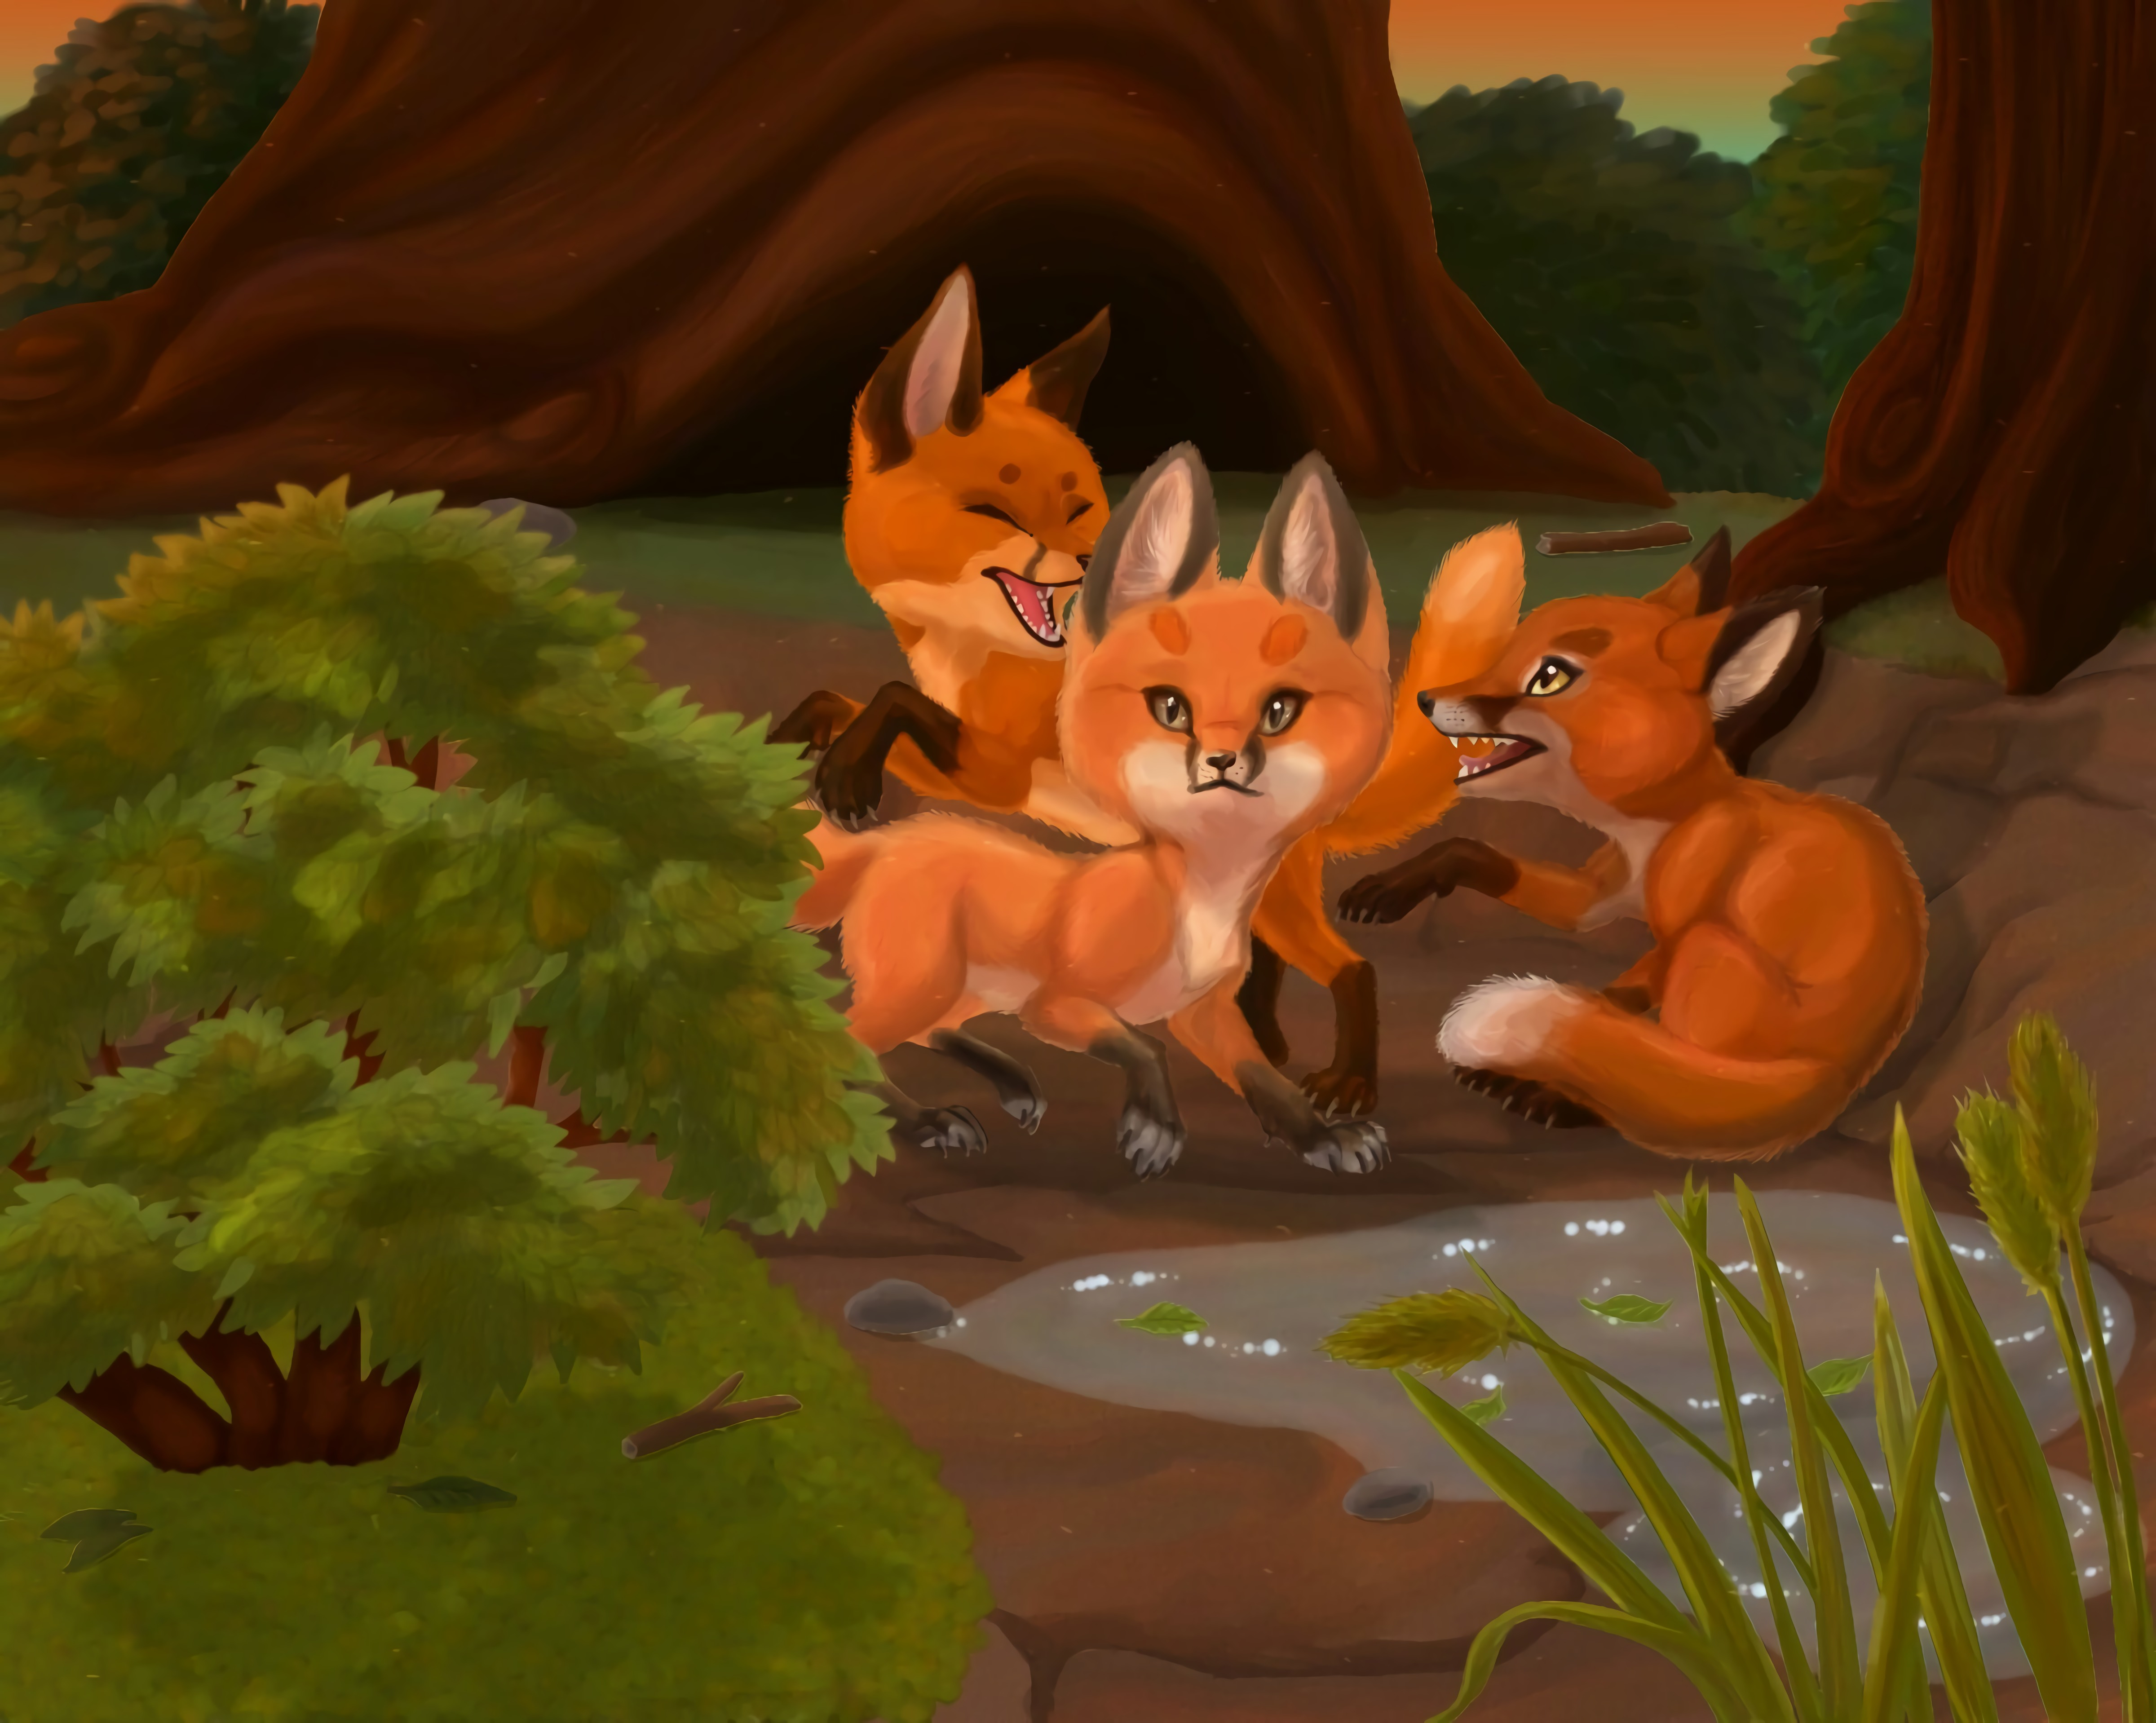 112804 download wallpaper Game, Wildlife, Art, Fox, Animals screensavers and pictures for free